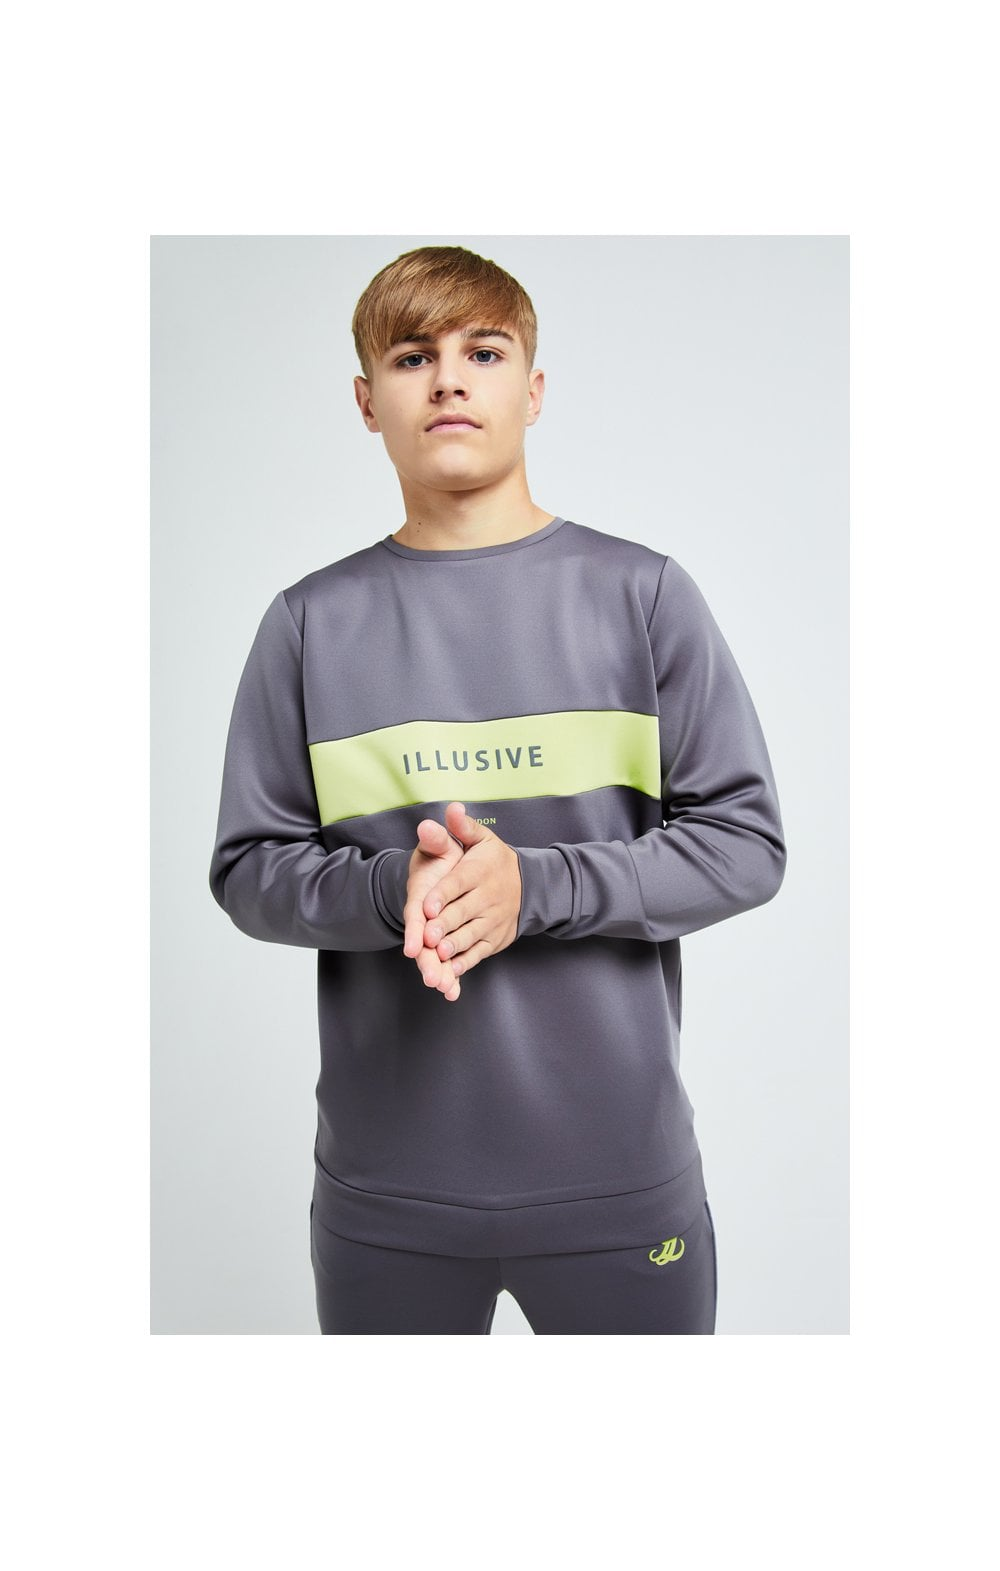 Illusive London Blaze Crew Sweater - Dark Grey & Lime